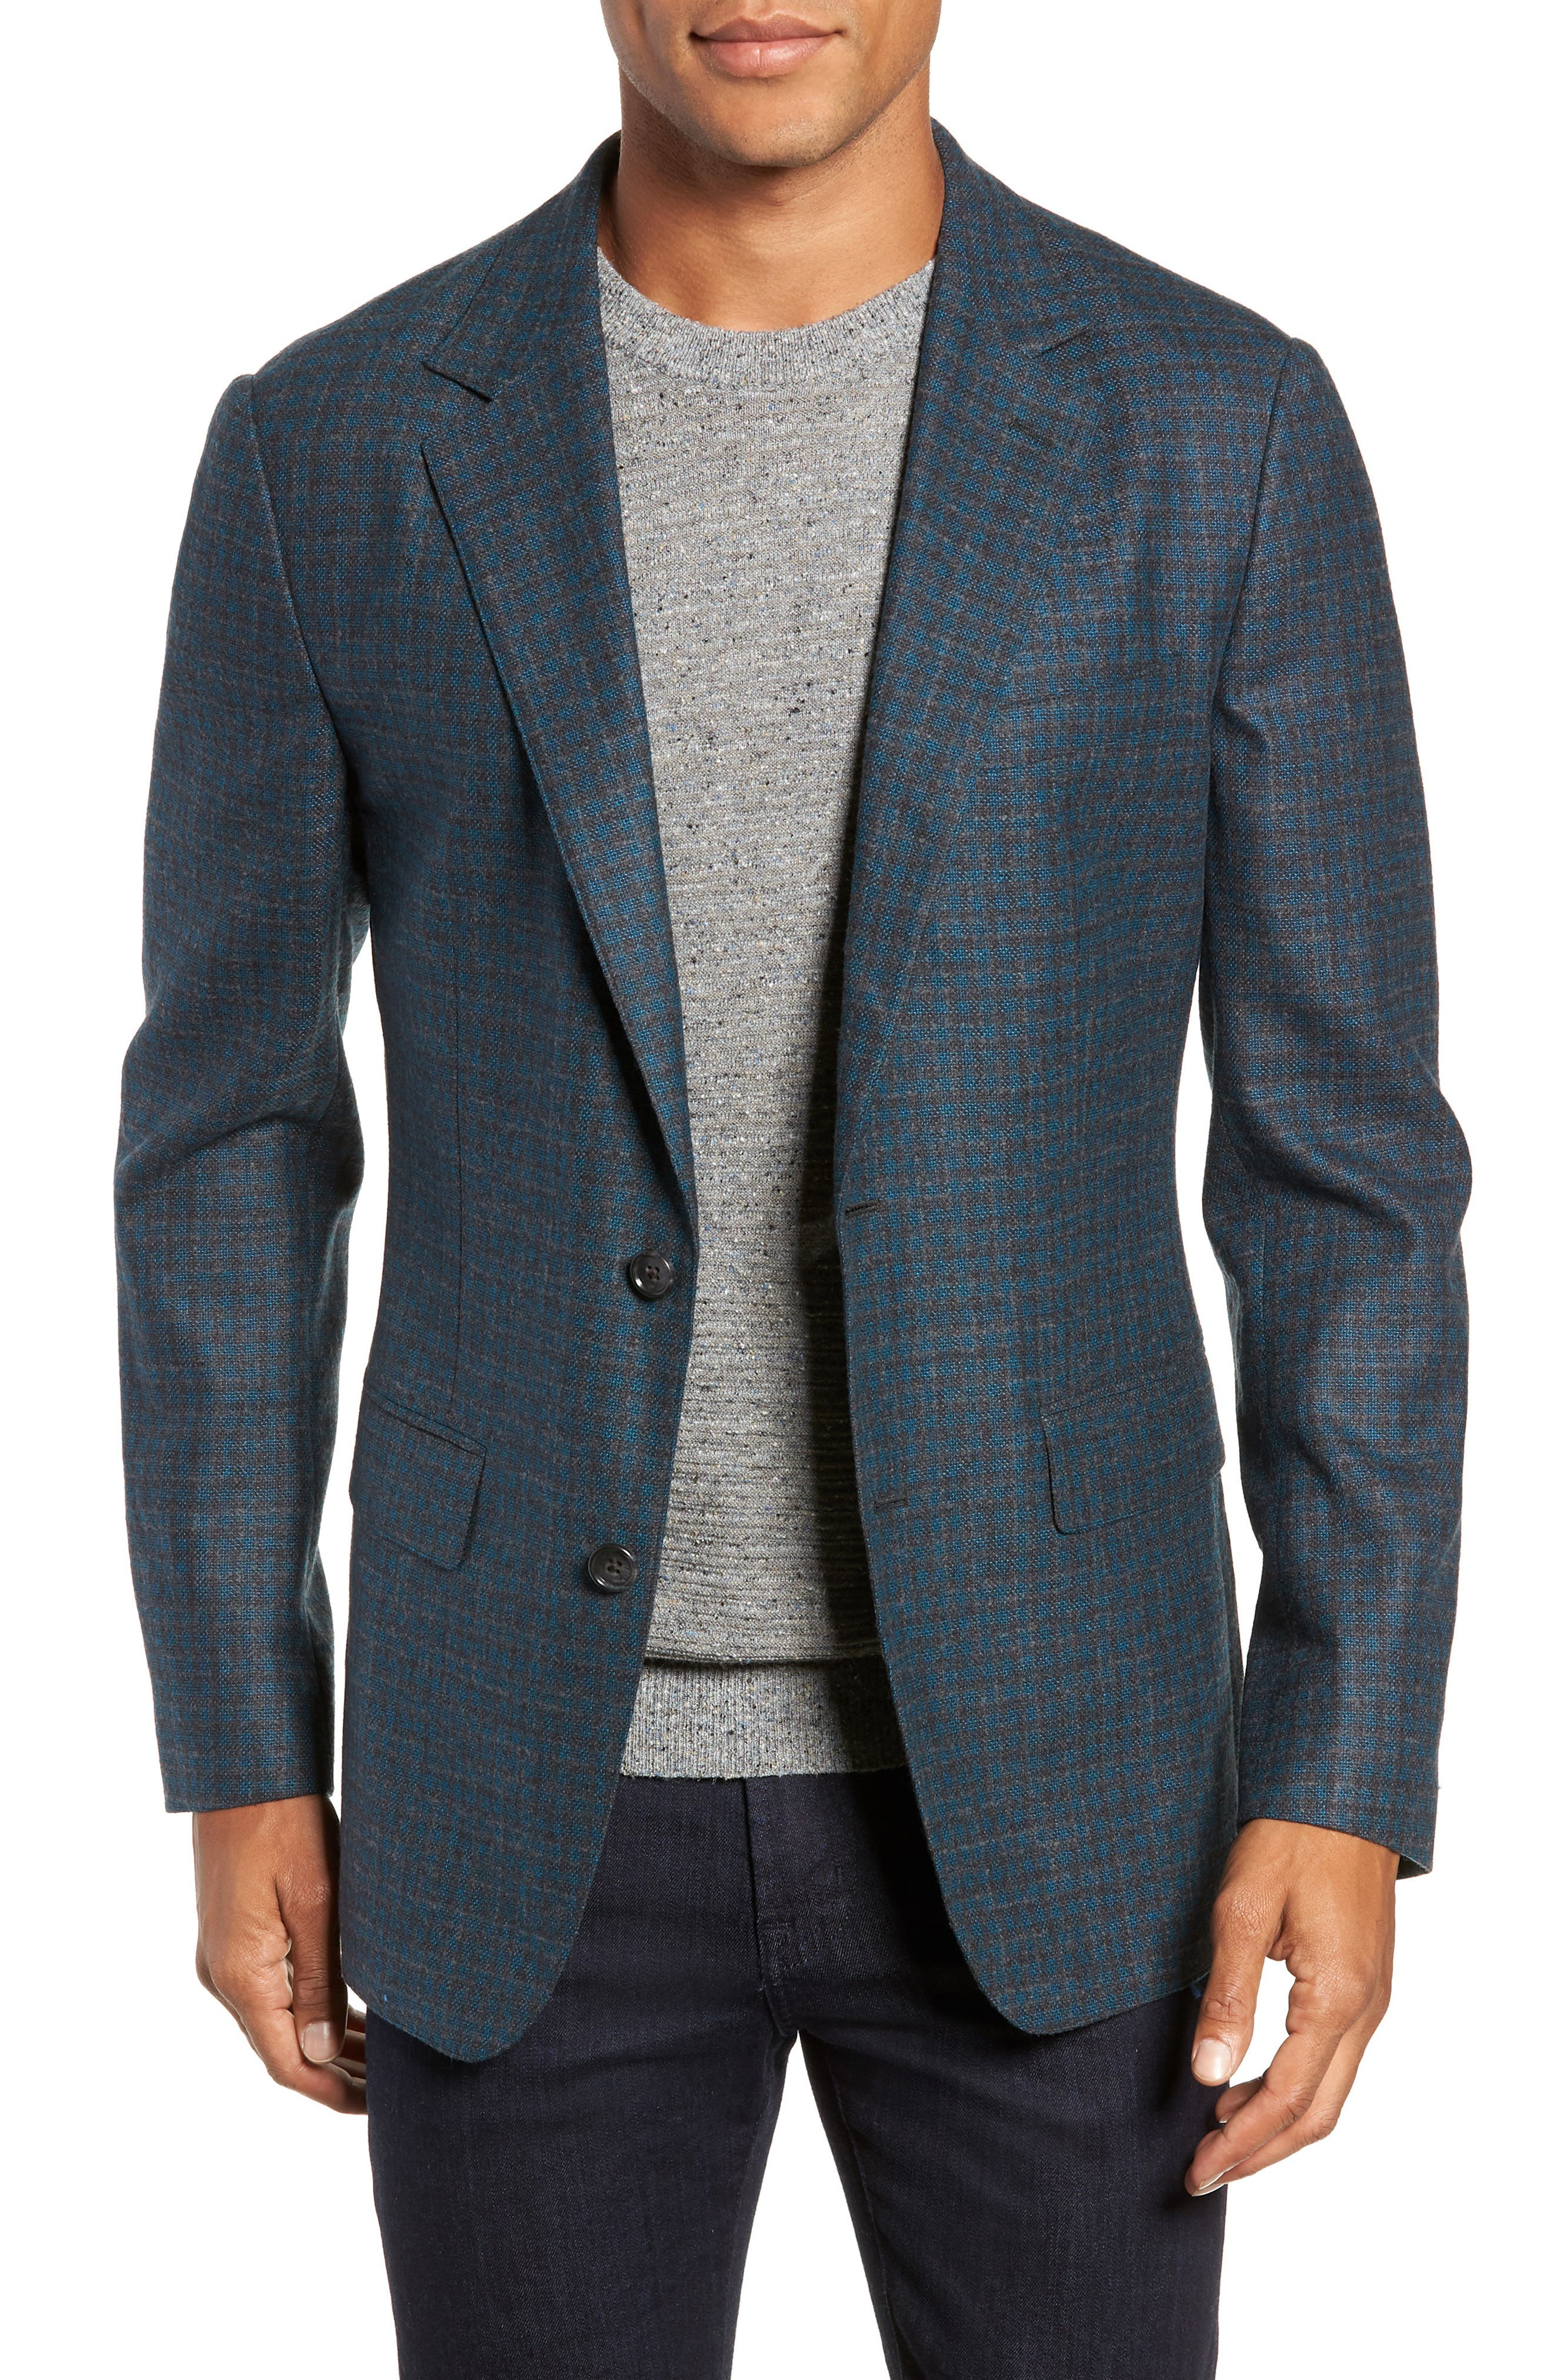 Jetsetter Slim Fit Unconstructed Blazer,                         Main,                         color, TEAL AND GREY PLAID